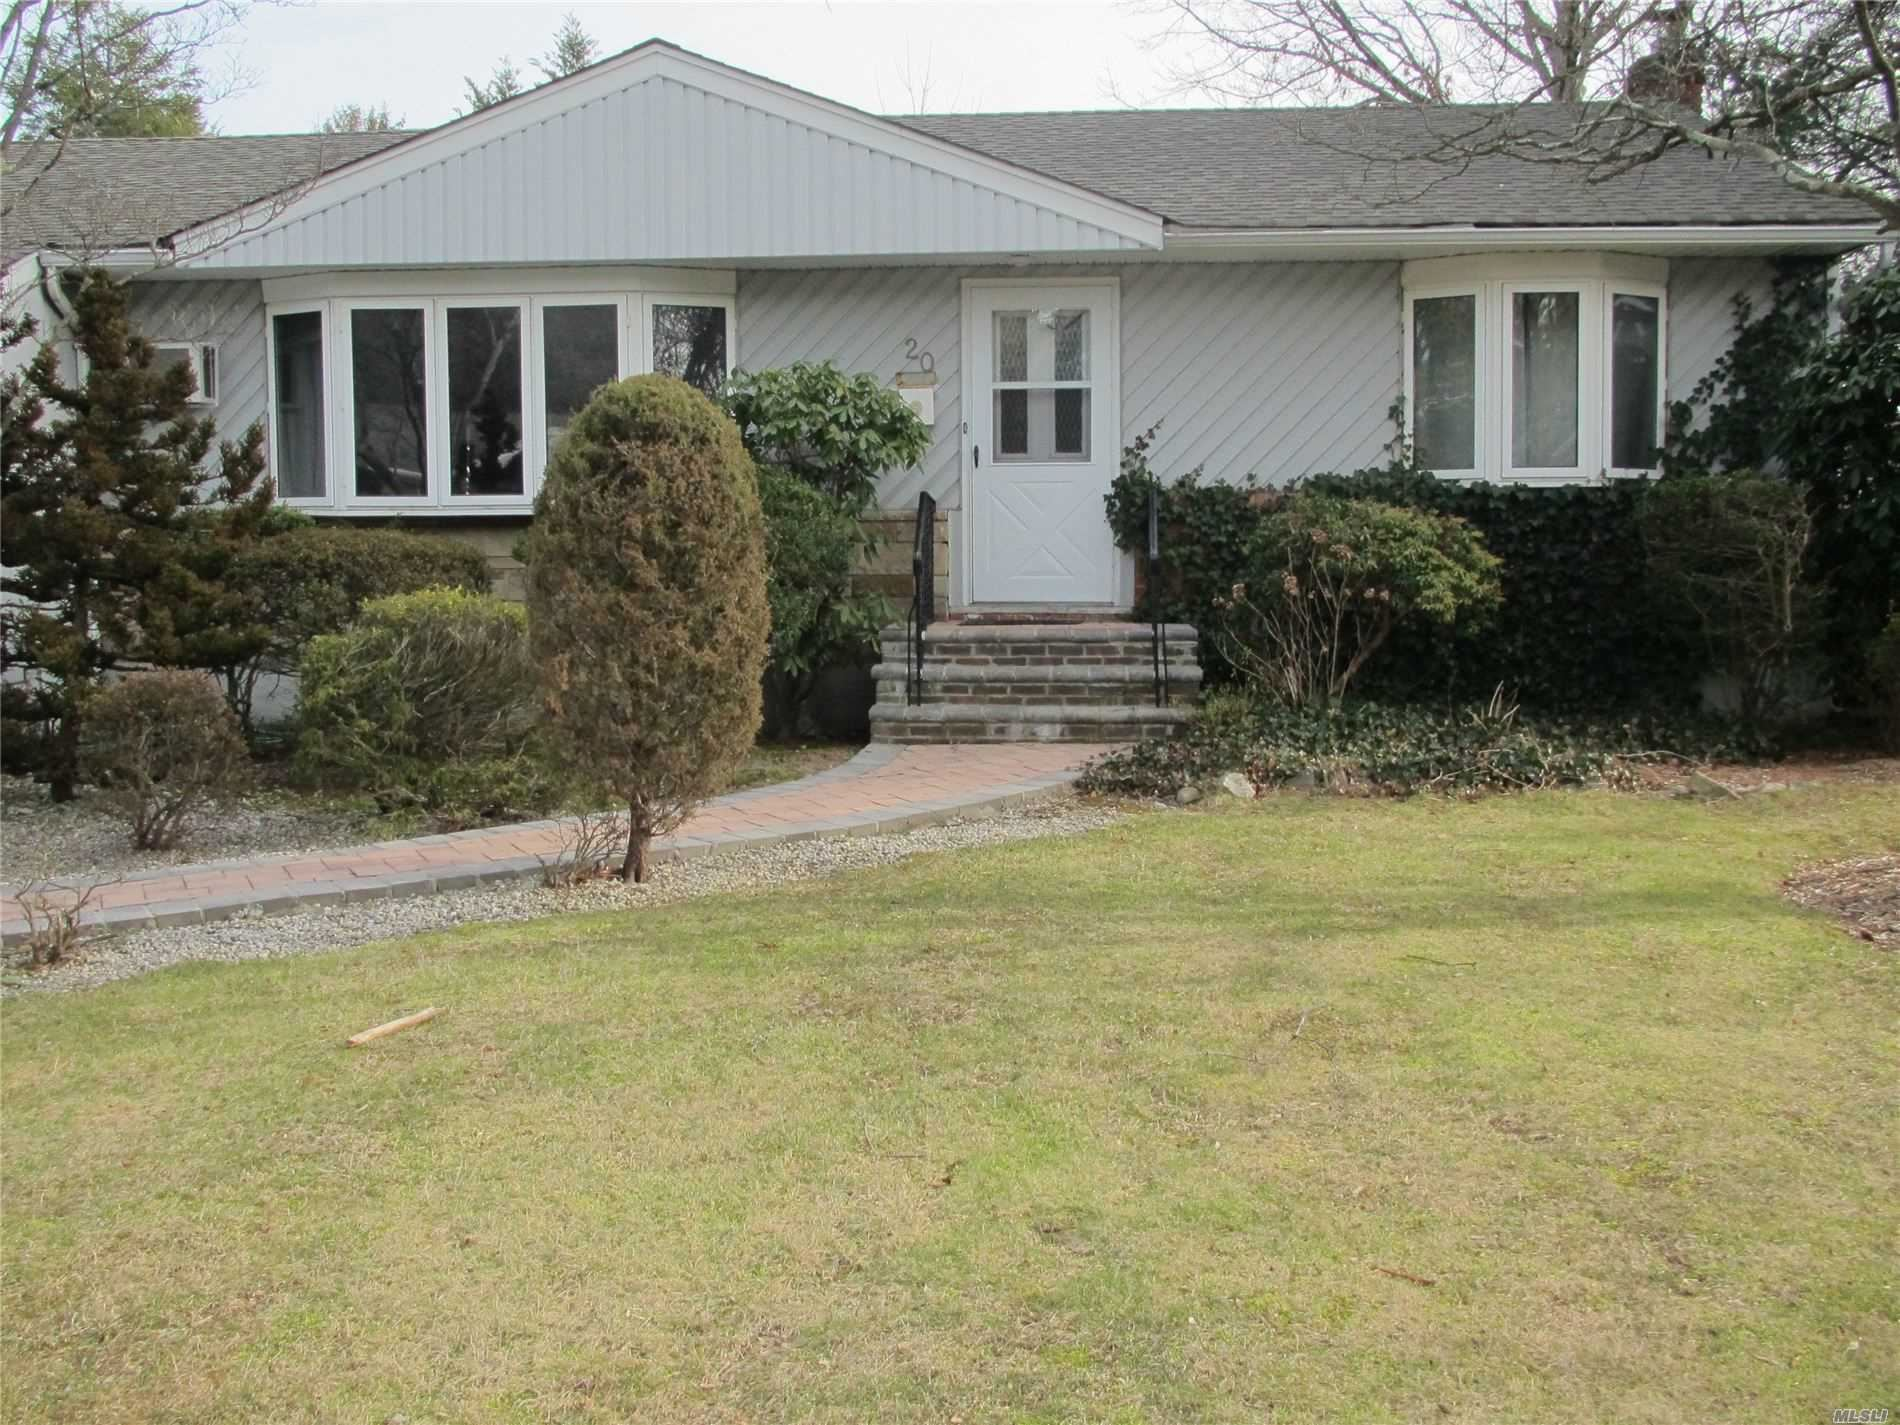 20 Renee Road, Syosset, NY 11791 - MLS#: 3196030